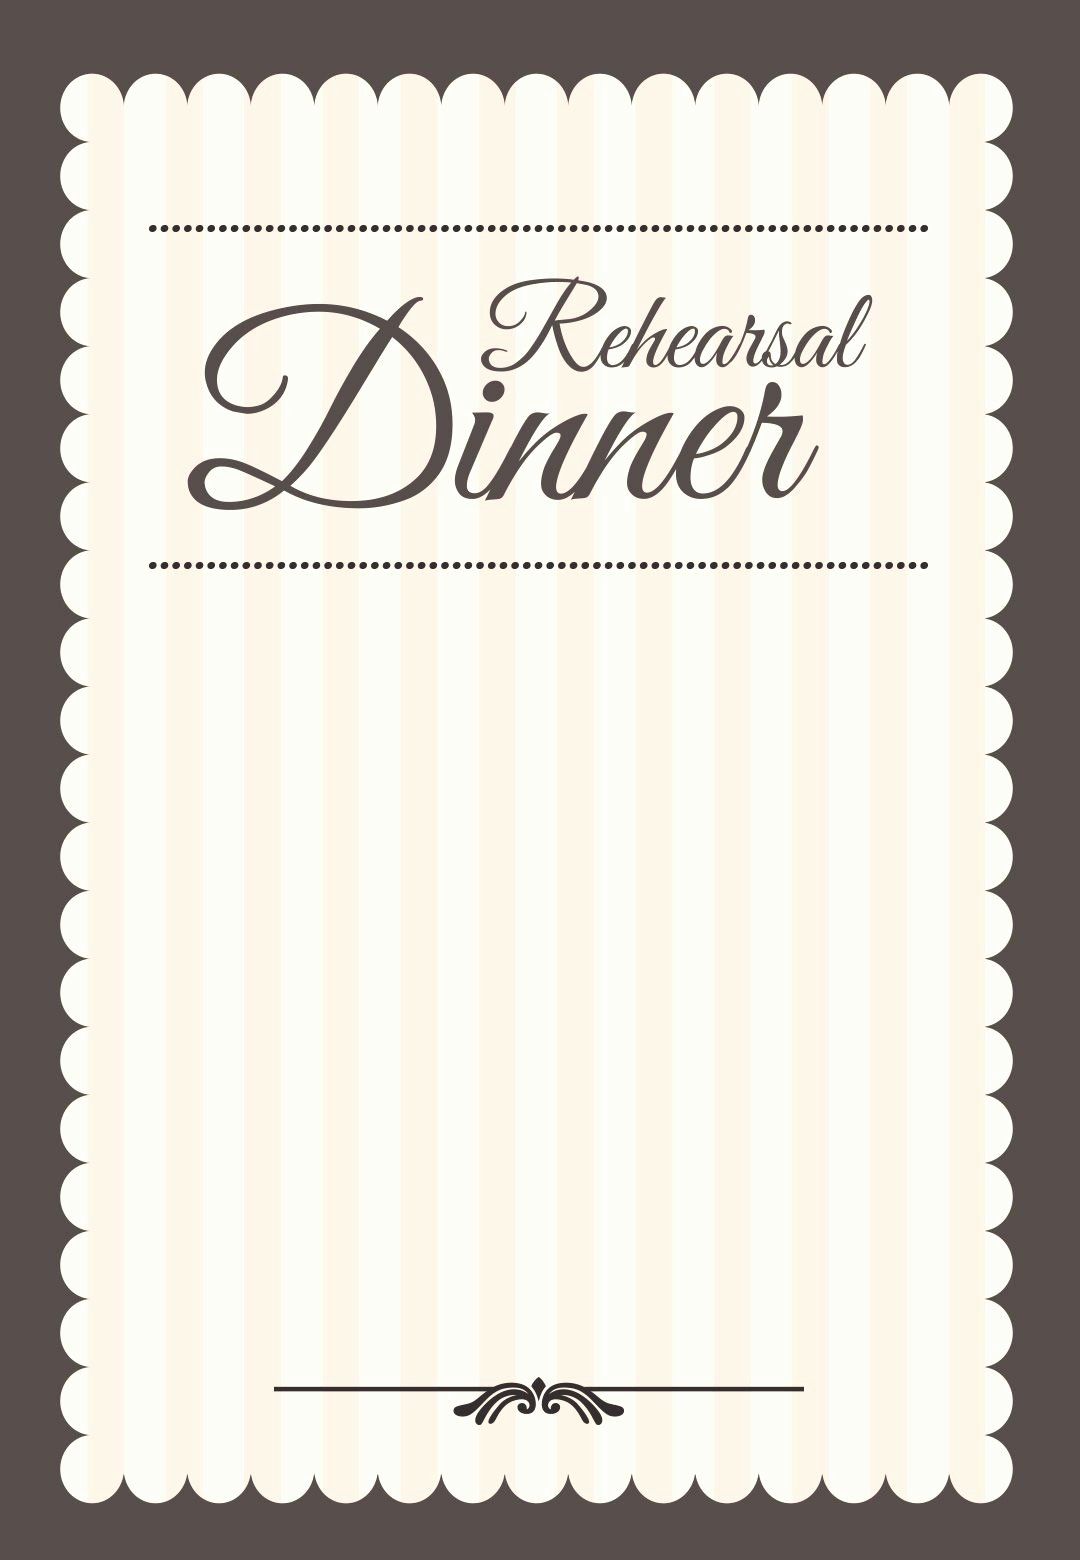 Free Rehearsal Dinner Template Inspirational Stamped Rehearsal Dinner Free Printable Rehearsal Dinner